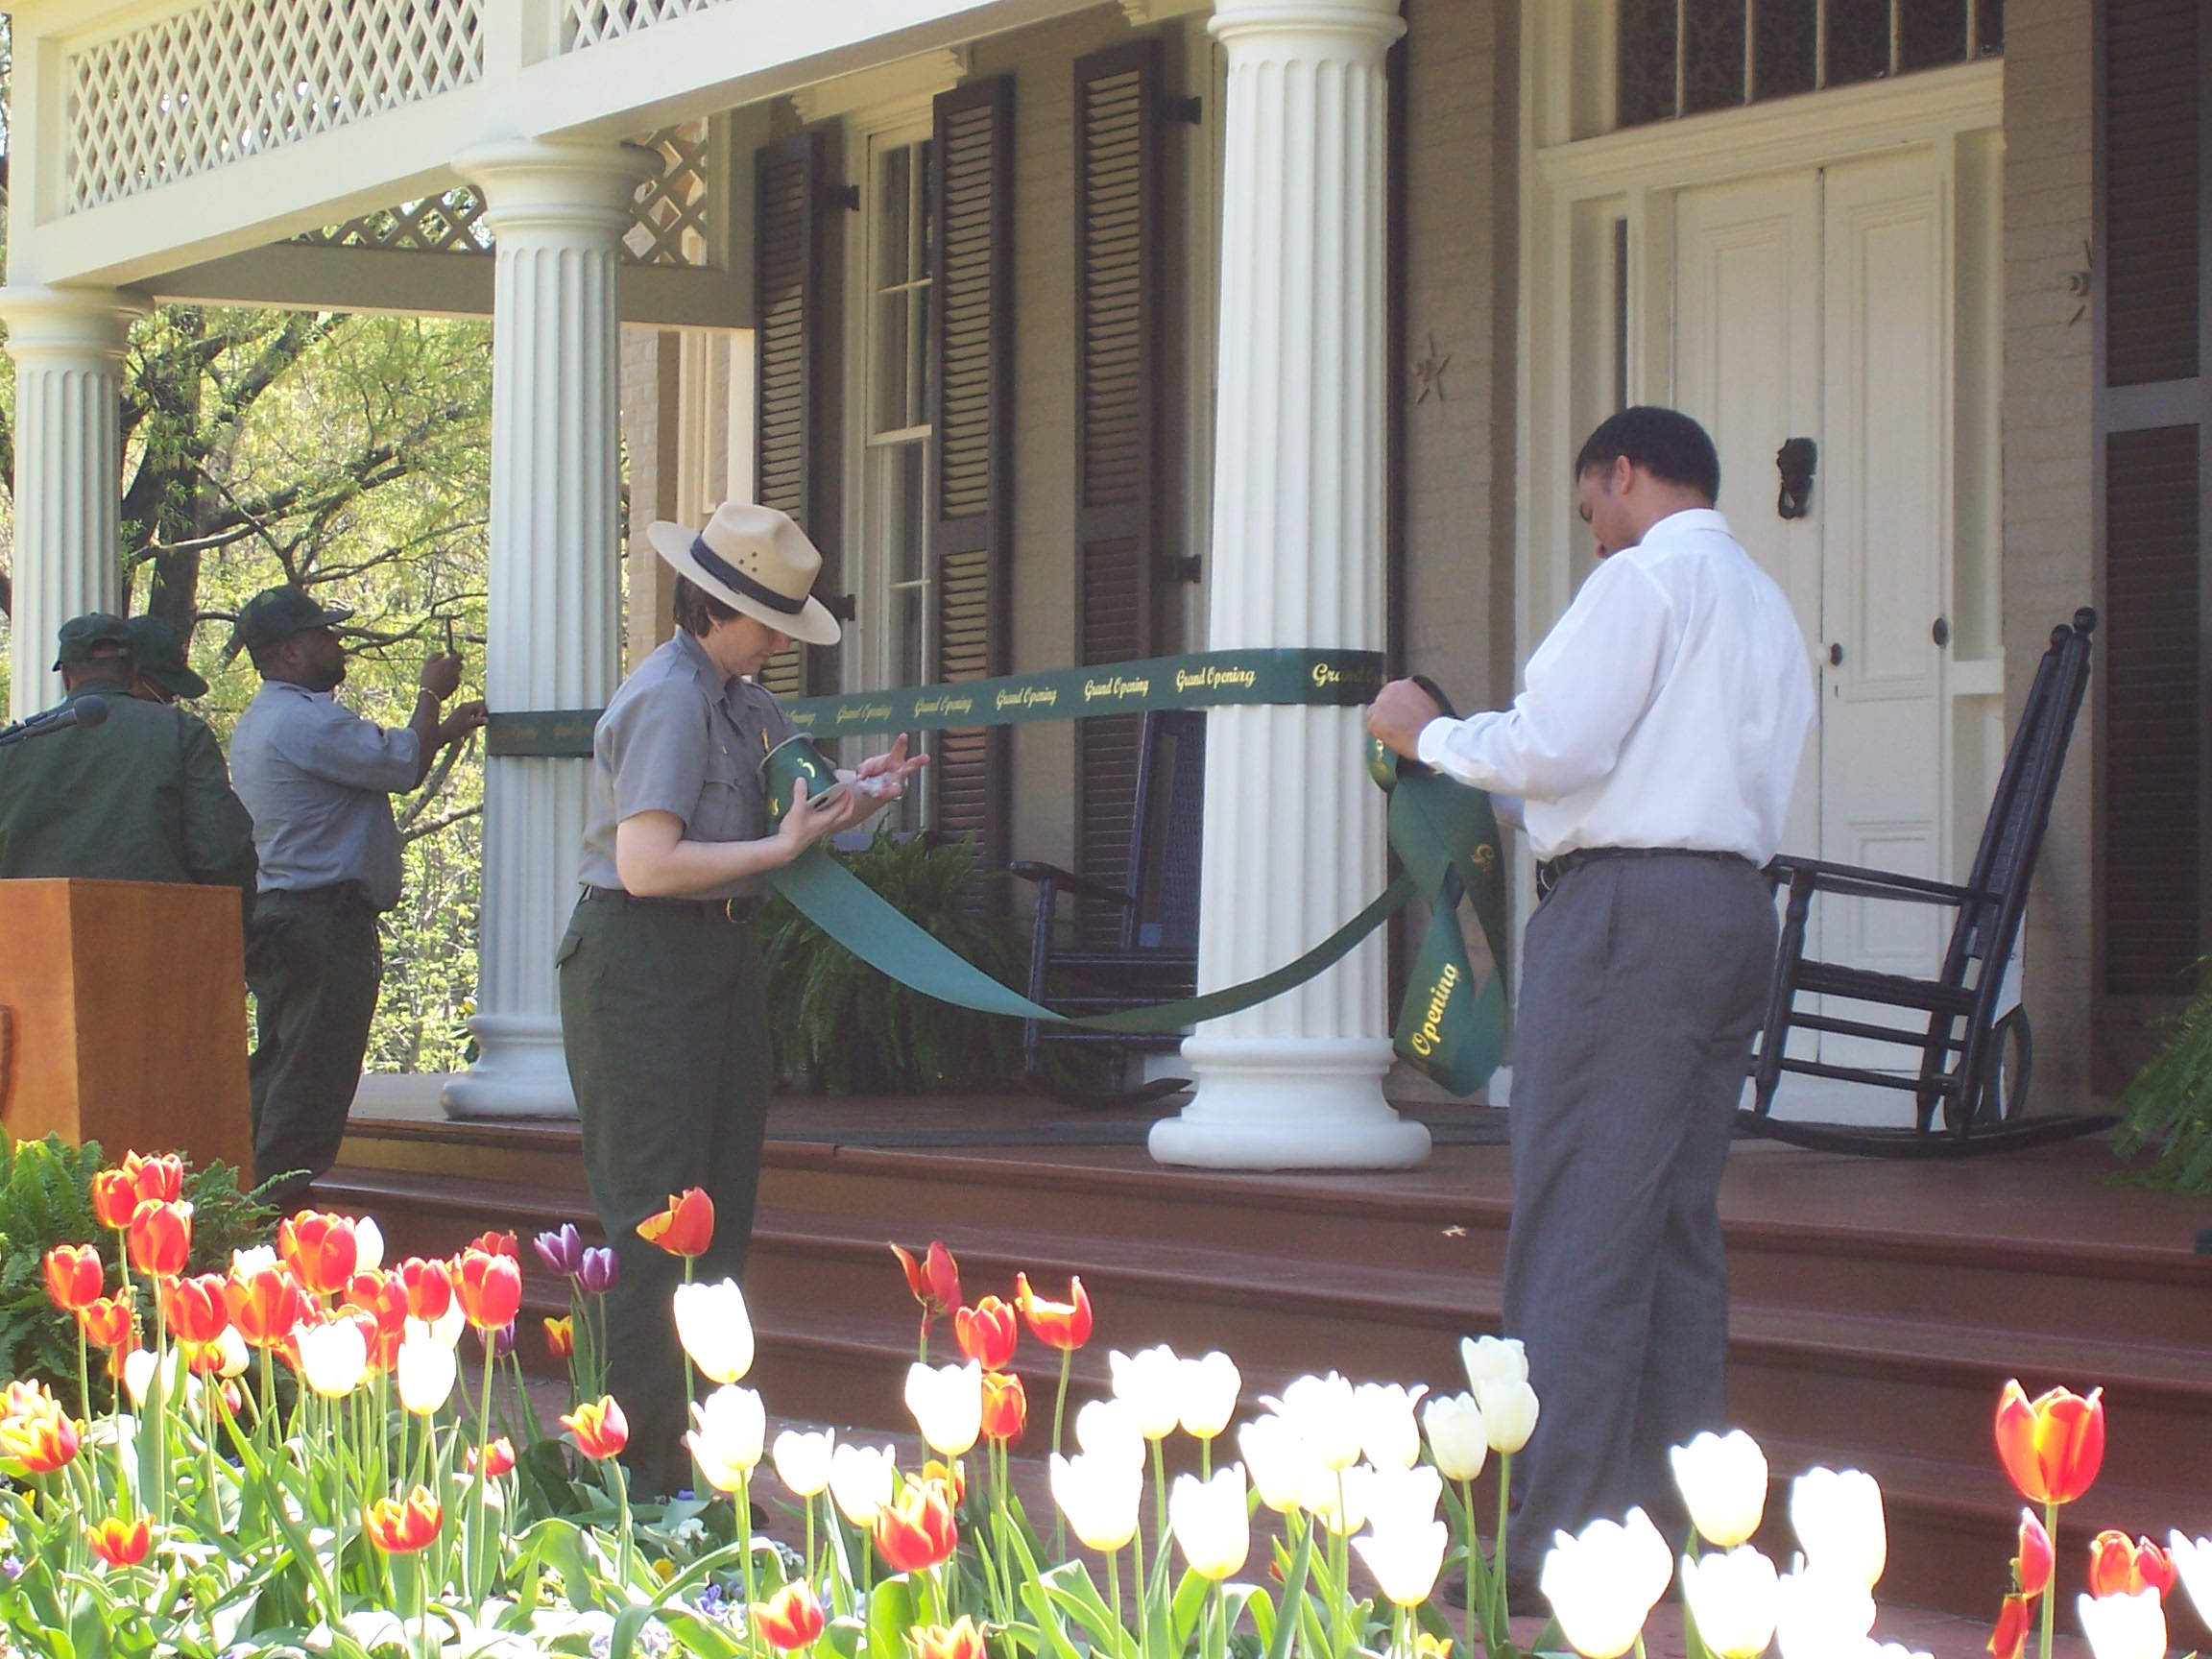 Special events at the Frederick Douglass National Historic Site